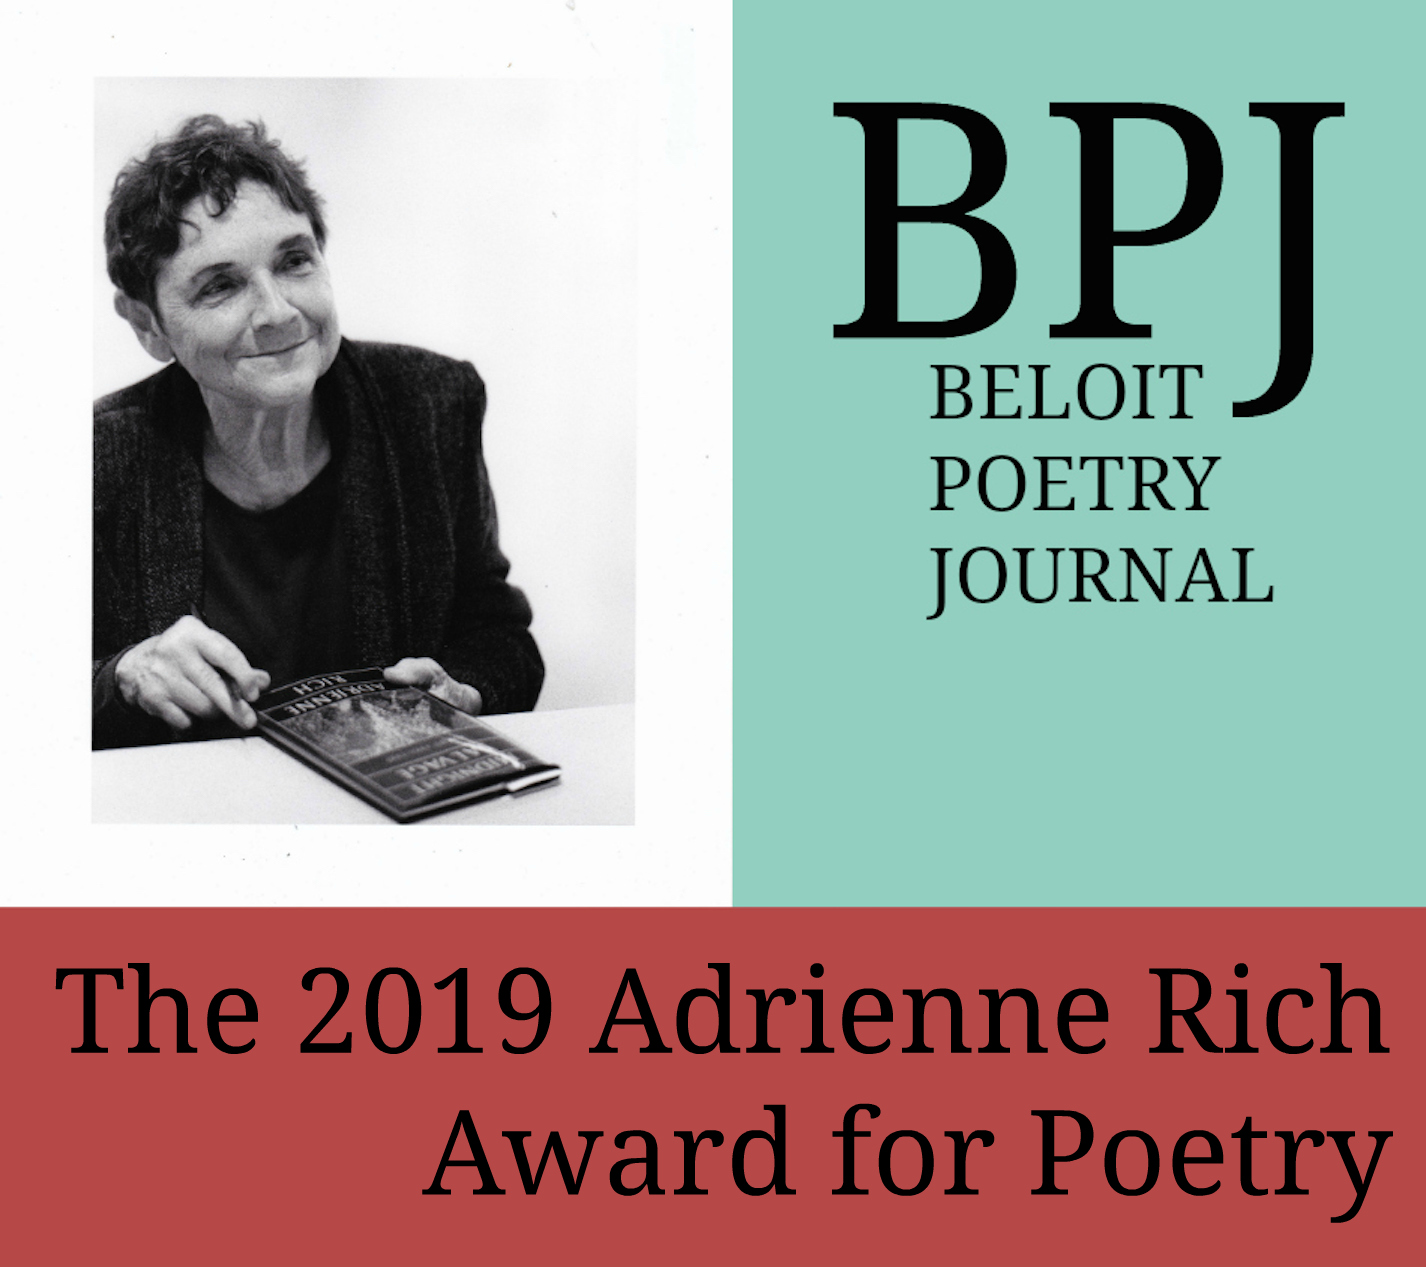 Submissions Open for 2019 Adrienne Rich Award for Poetry